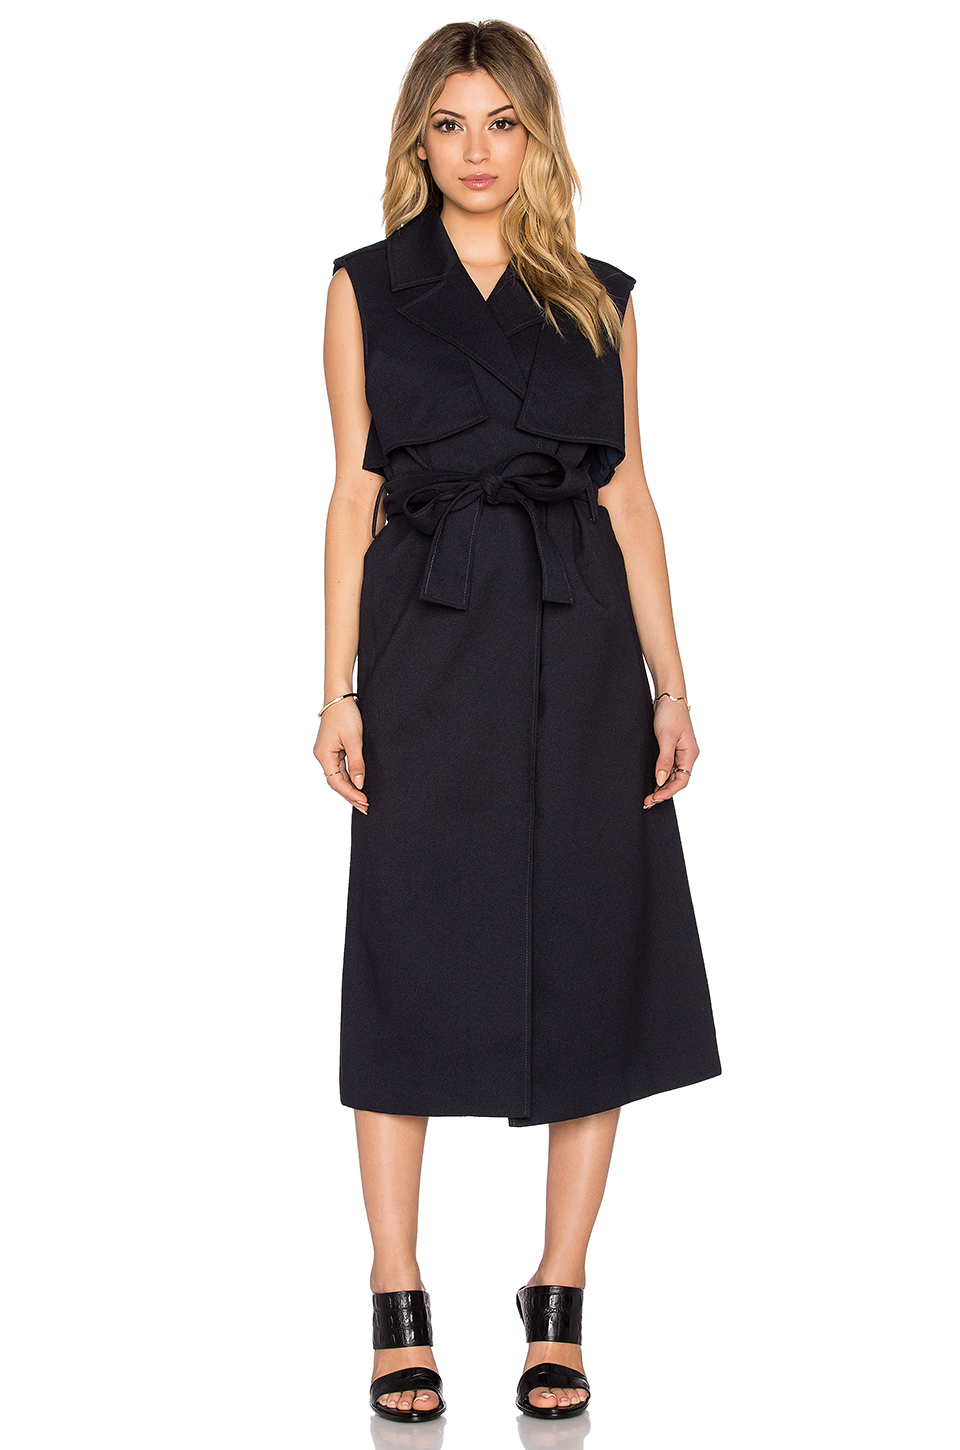 Finders Keepers Get Up Vest Dress. Revolve Clothing. Was: $200. Now: $76.